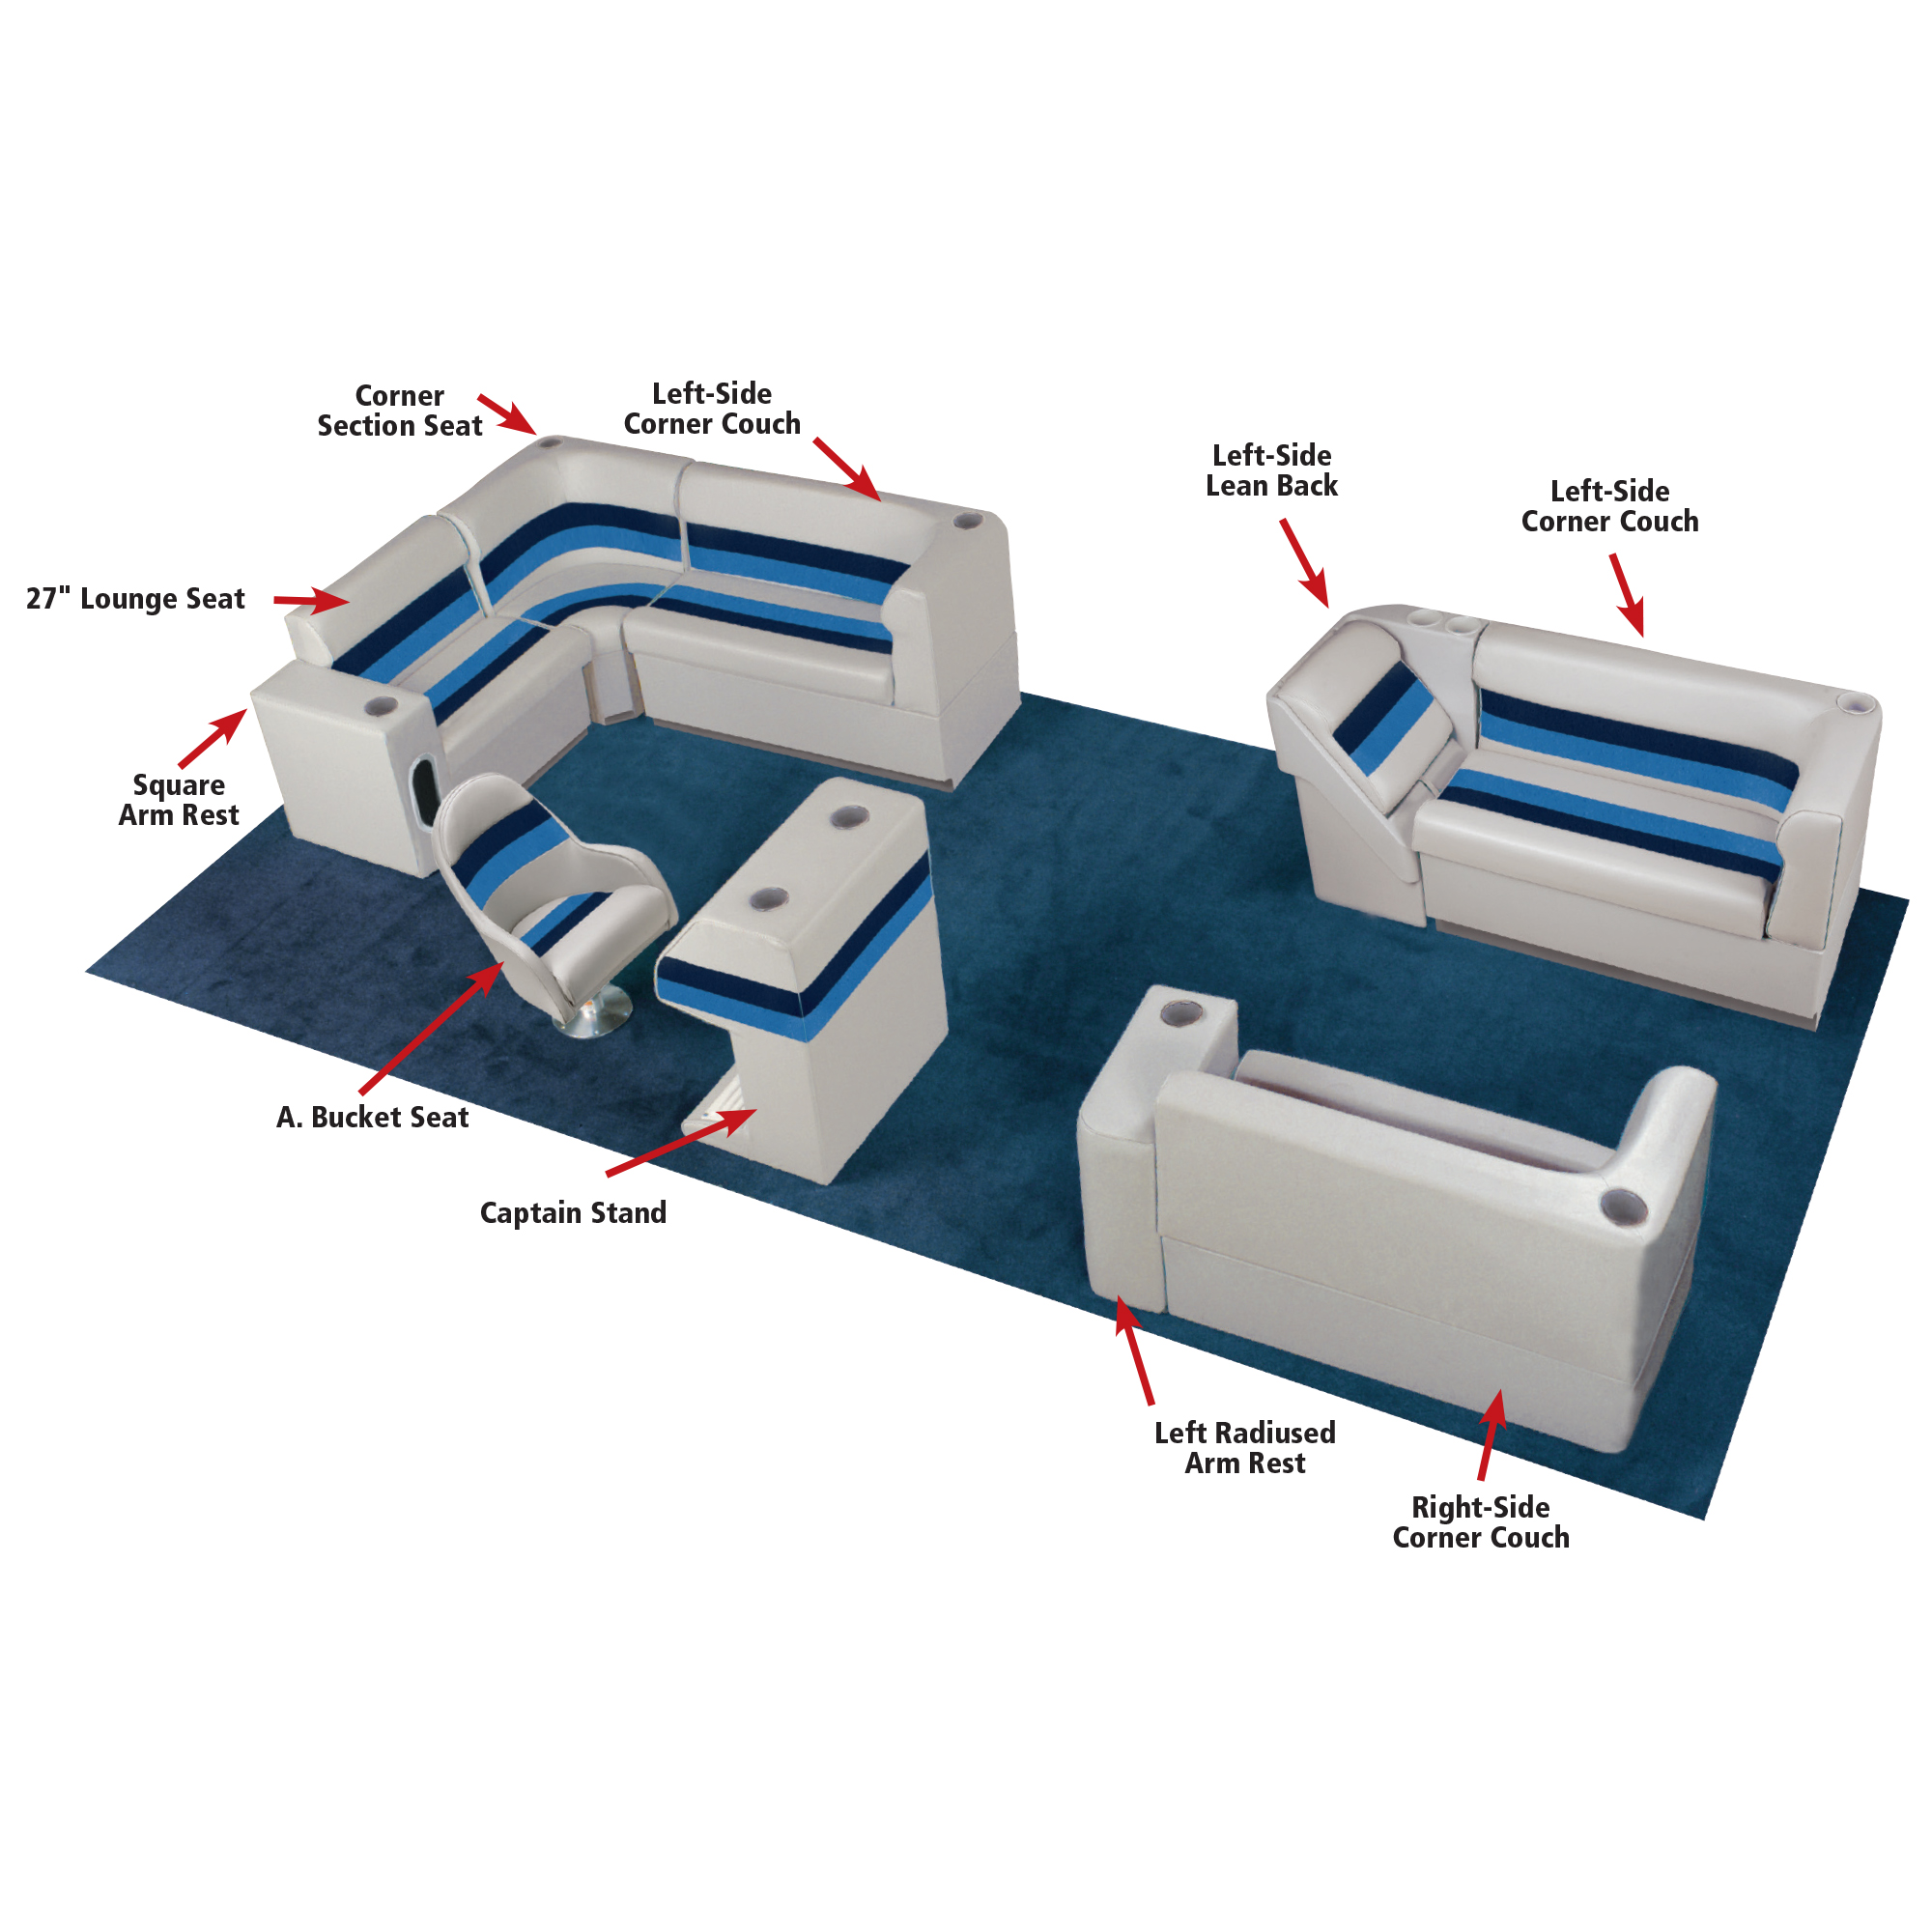 Toonmate Deluxe Pontoon Corner Couch with Toe Kick Base, Right Side, White